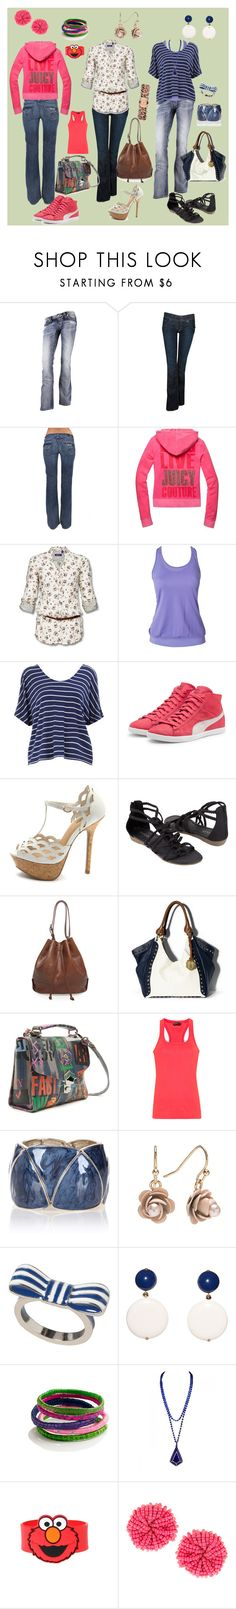 """""""Divertido, Romântico e Despojado"""" by marlenewelke ❤ liked on Polyvore featuring Miss Me, Hudson Jeans, Juicy Couture, Casall, Dorothy Perkins, Puma, Bucco, A.P.C., Vince Camuto and Vivienne Westwood"""